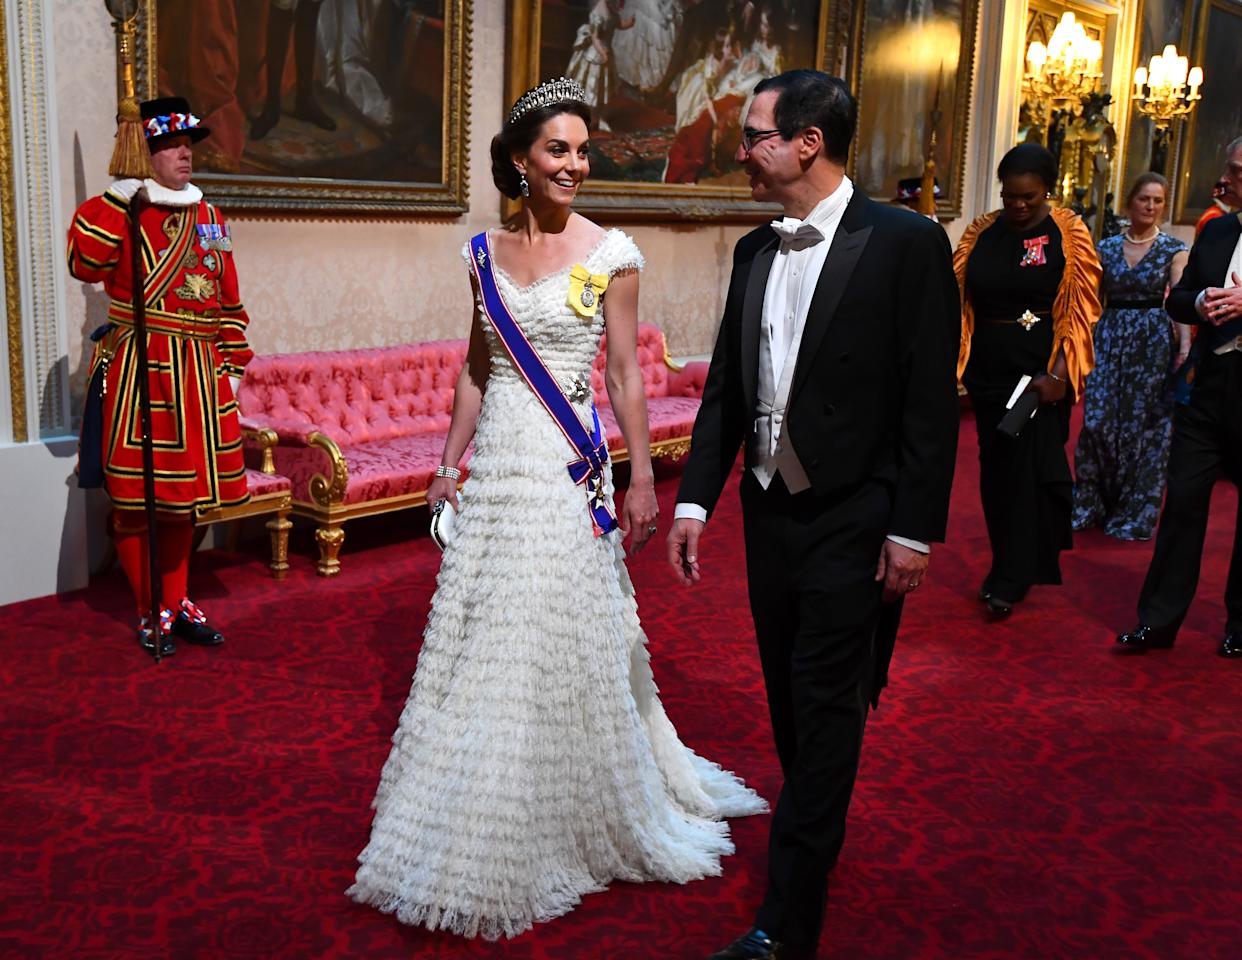 For the US state banquet, the Duchess wore a ruffled white gown by Alexander McQueen with Princess Diana's Lover's Knot tiara and the Queen Mother's sapphire and diamond fringe earrings. Kate also sported her Royal Family Order and debuted her Royal Victorian Order for the first time. [Photo: PA]